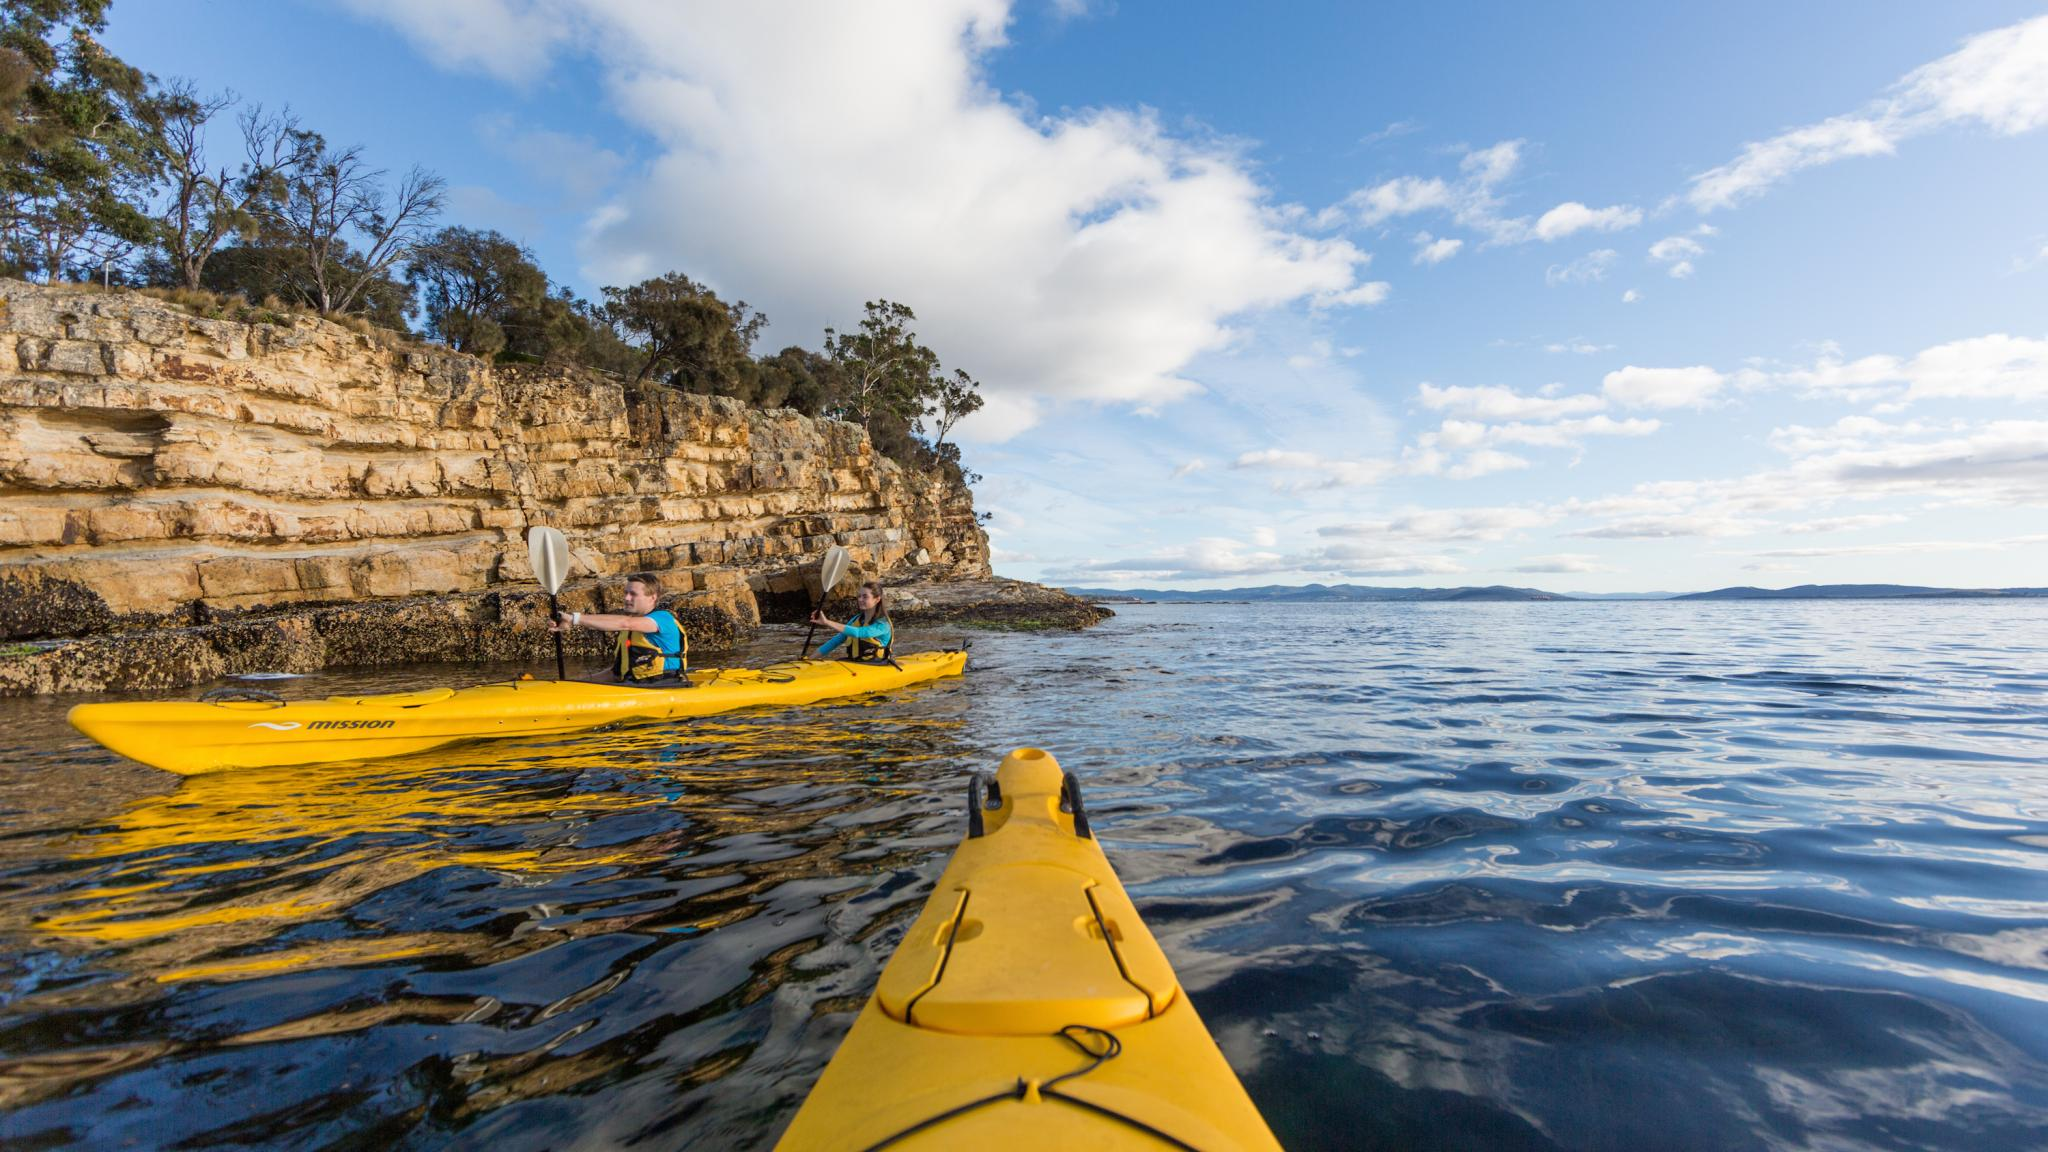 Roaring 40s Kayaking - sea kayaking Tasmania beautiful coastline